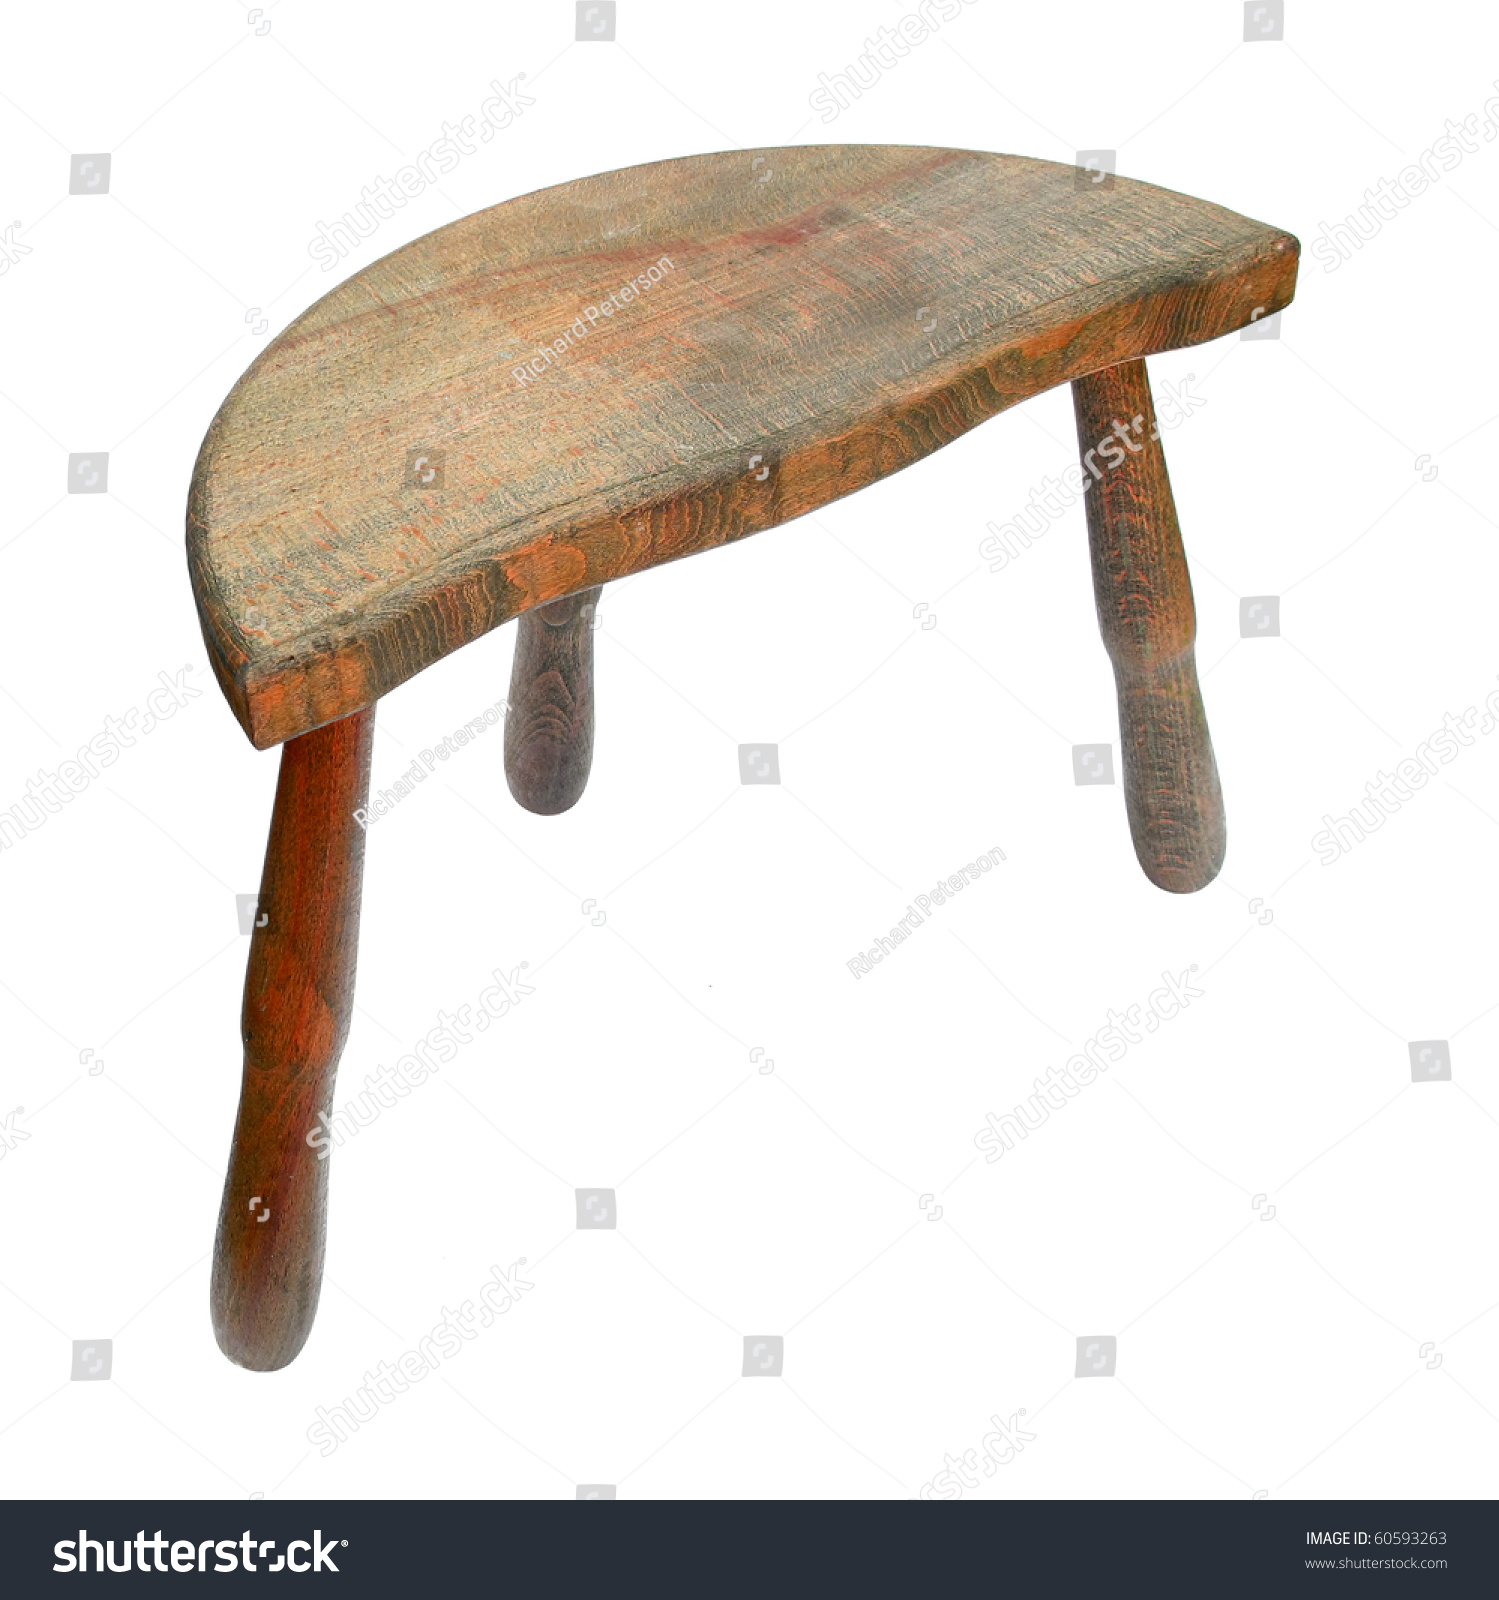 Chair Stool Wooden With Three Legs Stock Photo 60593263